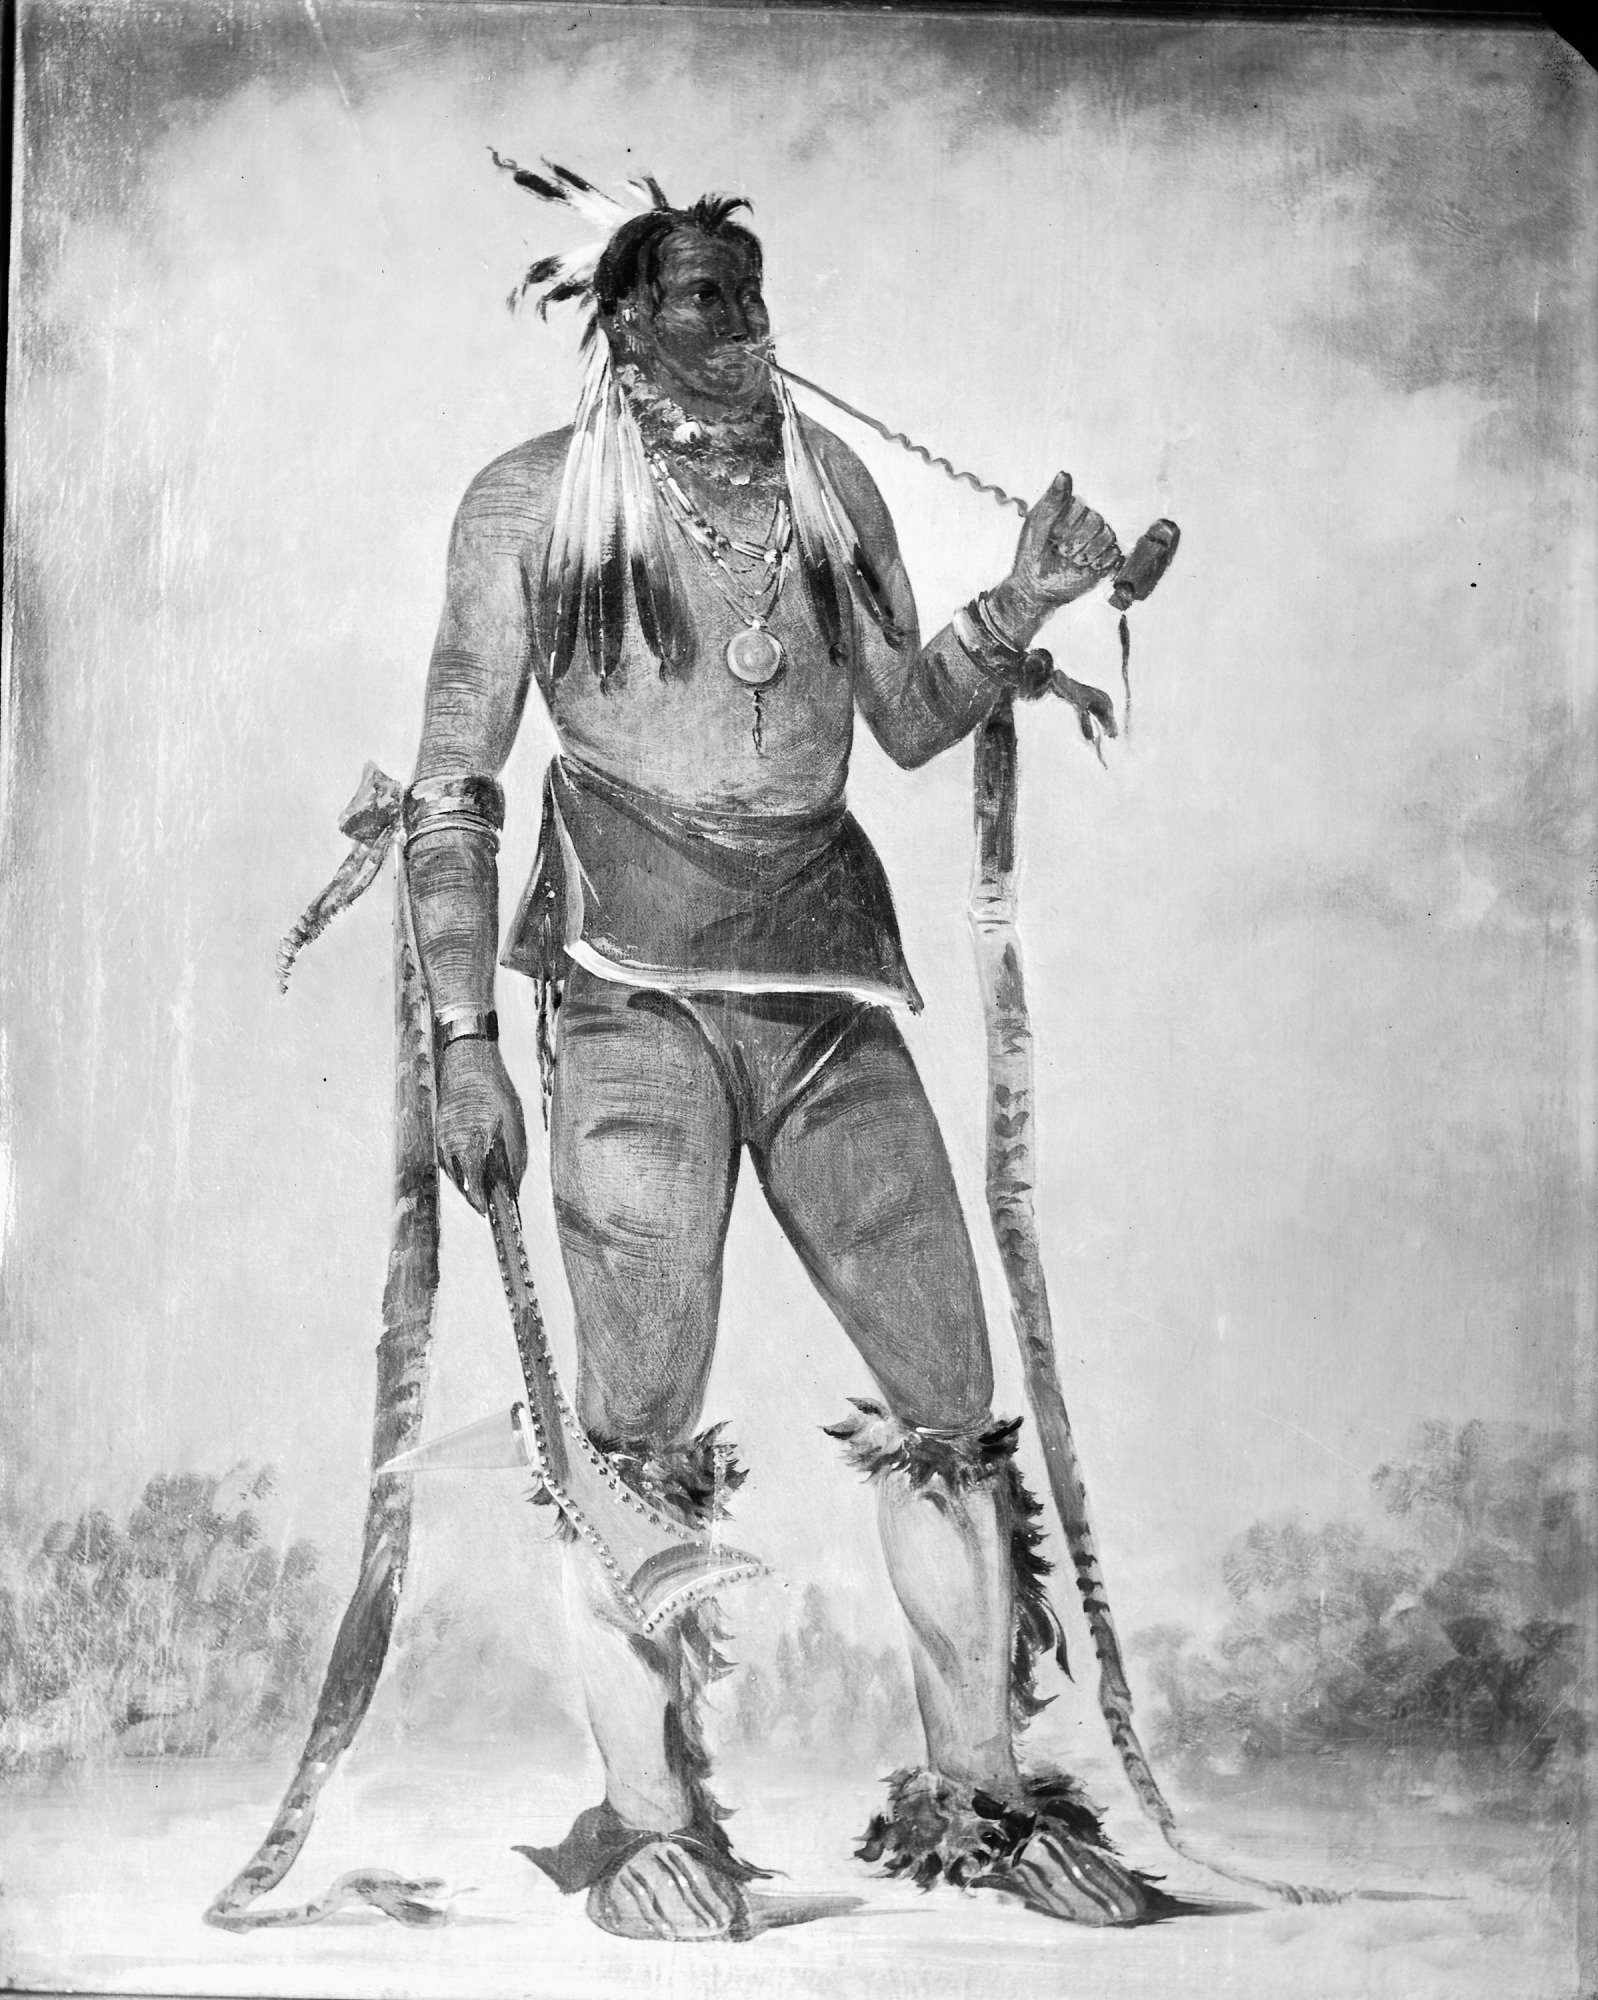 Image is Stanley portrait of Native American with pipe, c. 1860s. Smithsonian Institution Archives, negative number nhb-21805.